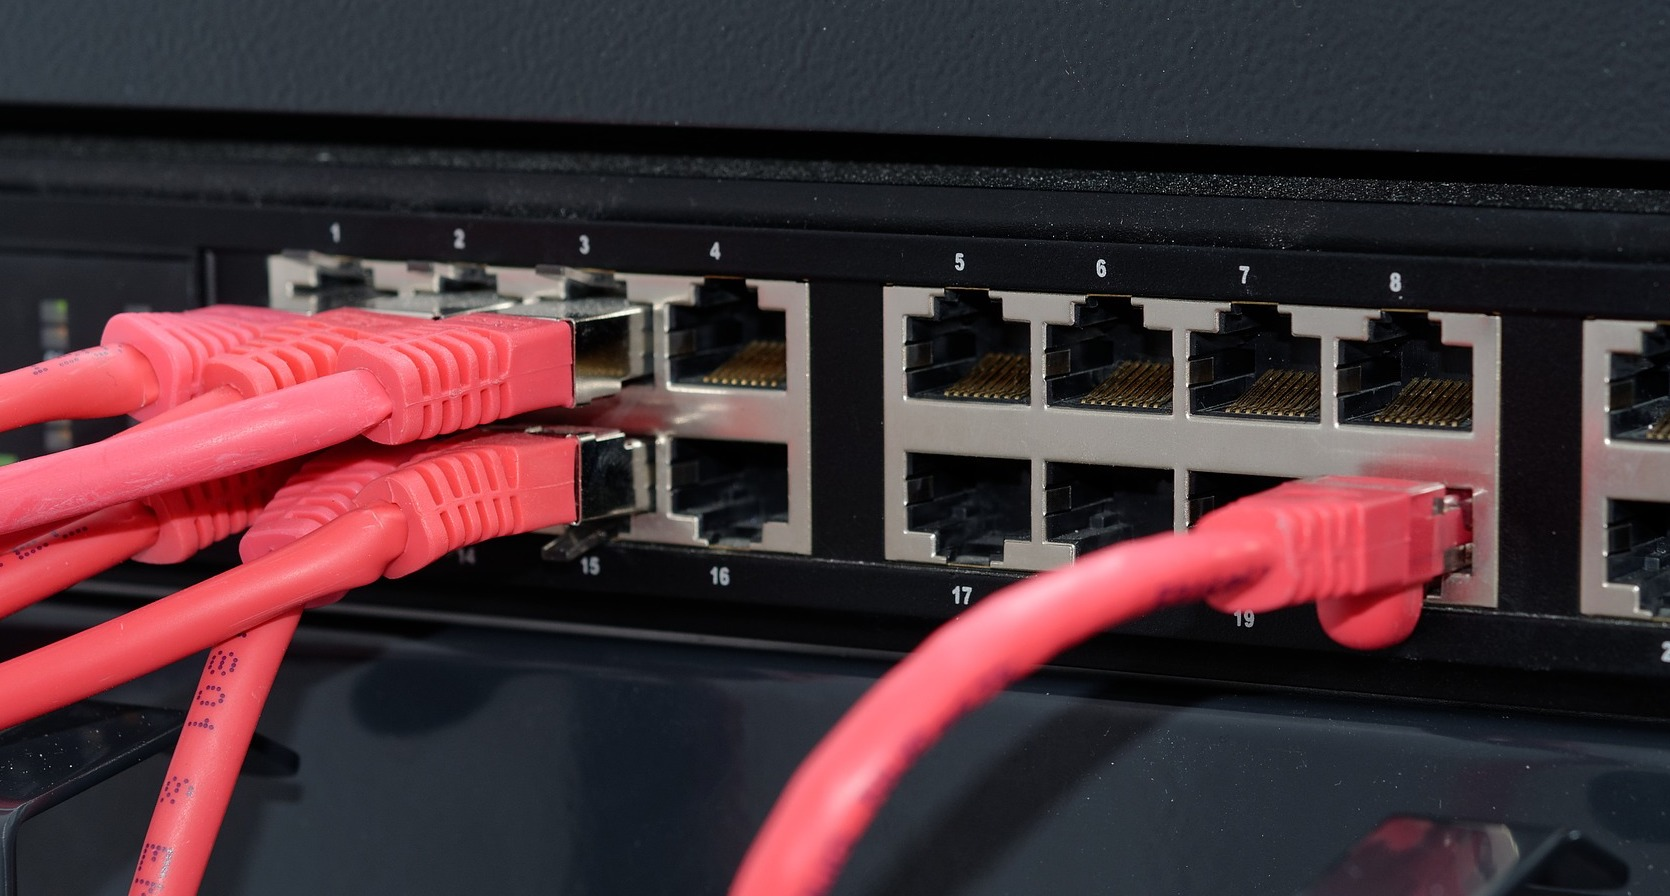 Setting Up Router Traffic Mirroring To Wireshark Testdevlab Blog Network Wiring Cable Computer And Examples Last Month We Published A Post About Specific Conditions For Software Testing In That Shared Our Knowledge On How